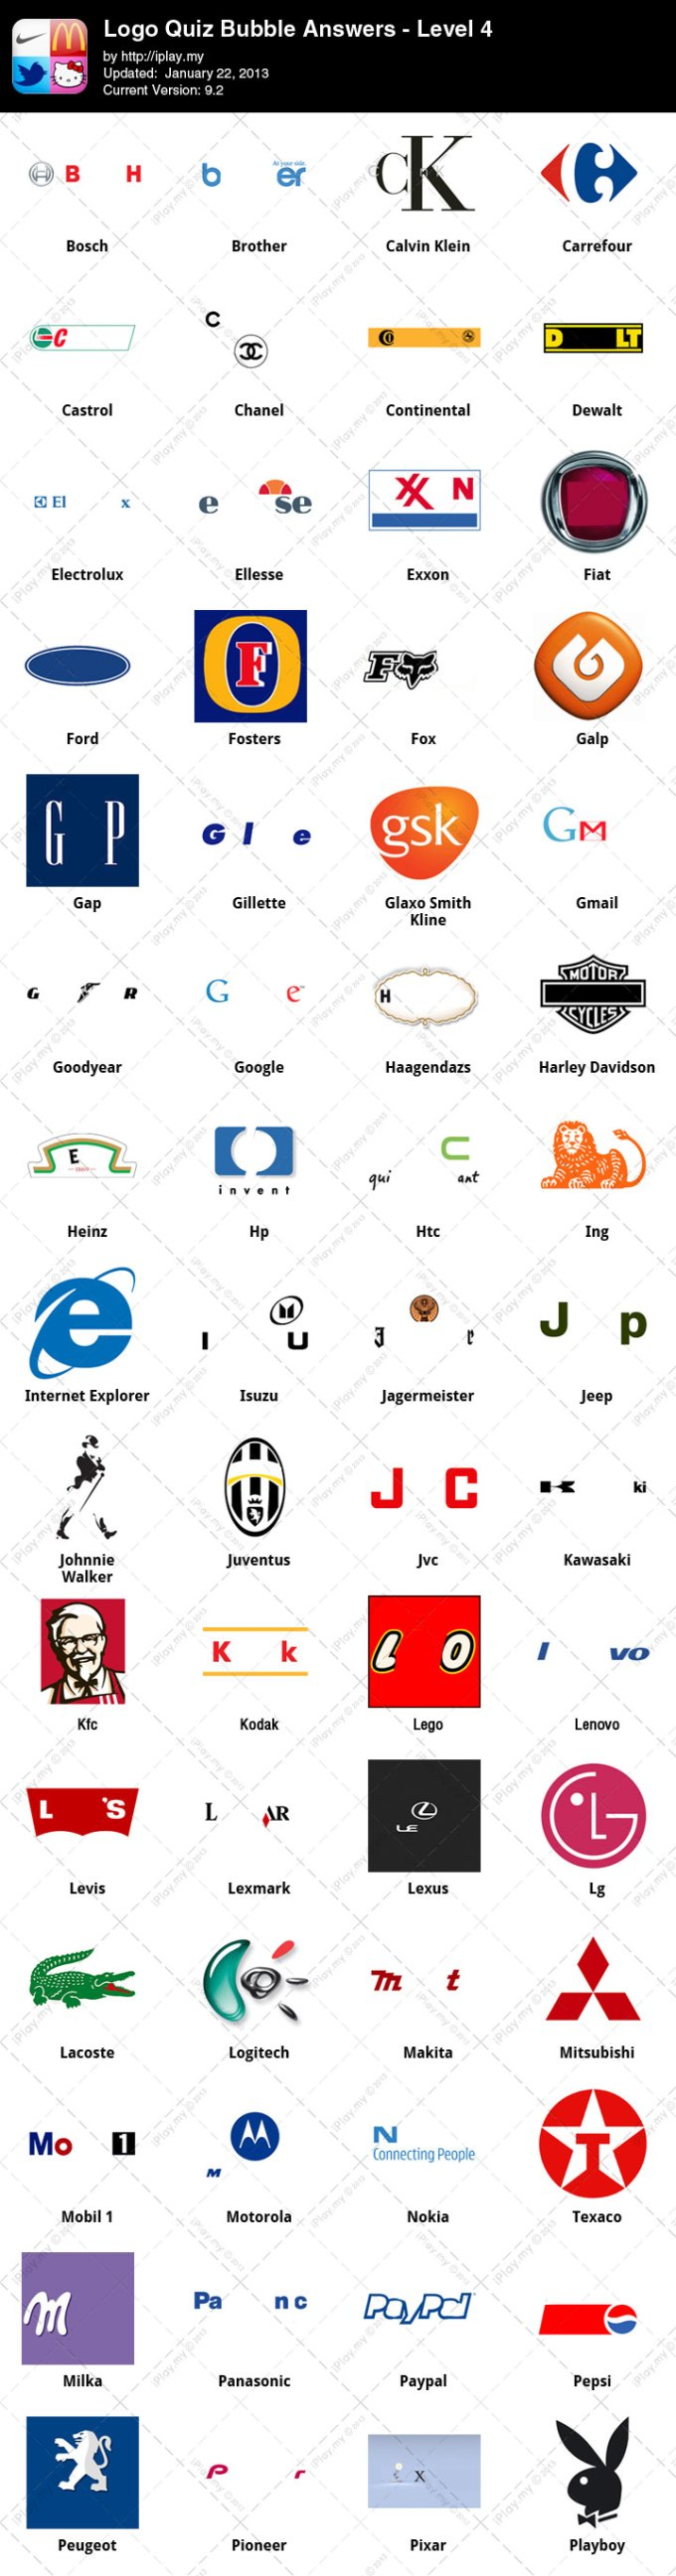 Logo quiz by bubble expert mode level 4 answers